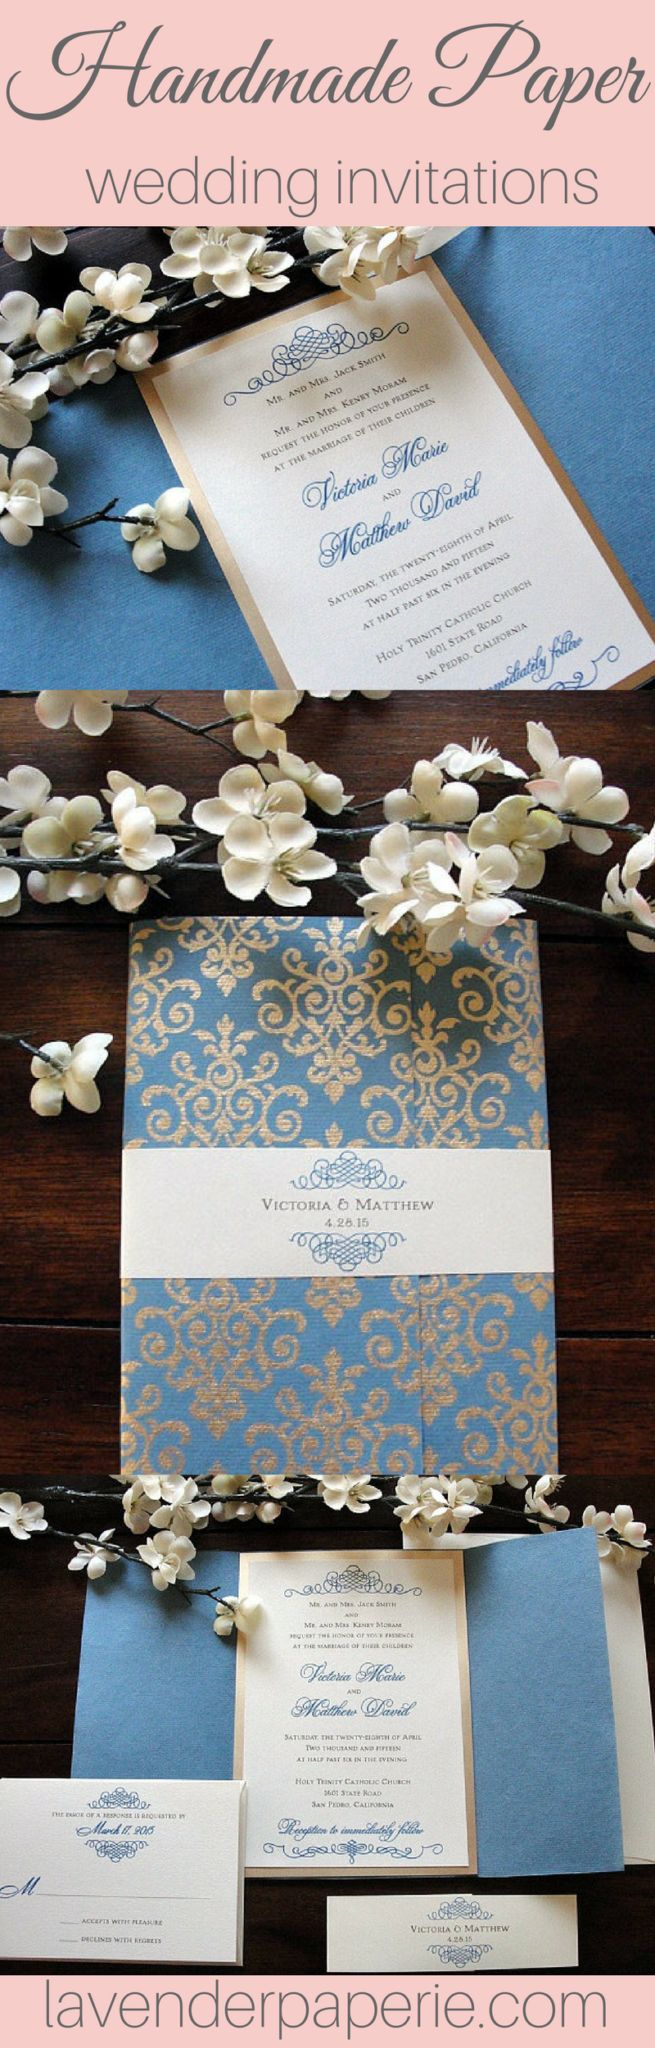 white and gold wedding invitations%0A Sarahie     Indian InvitationsGold Wedding